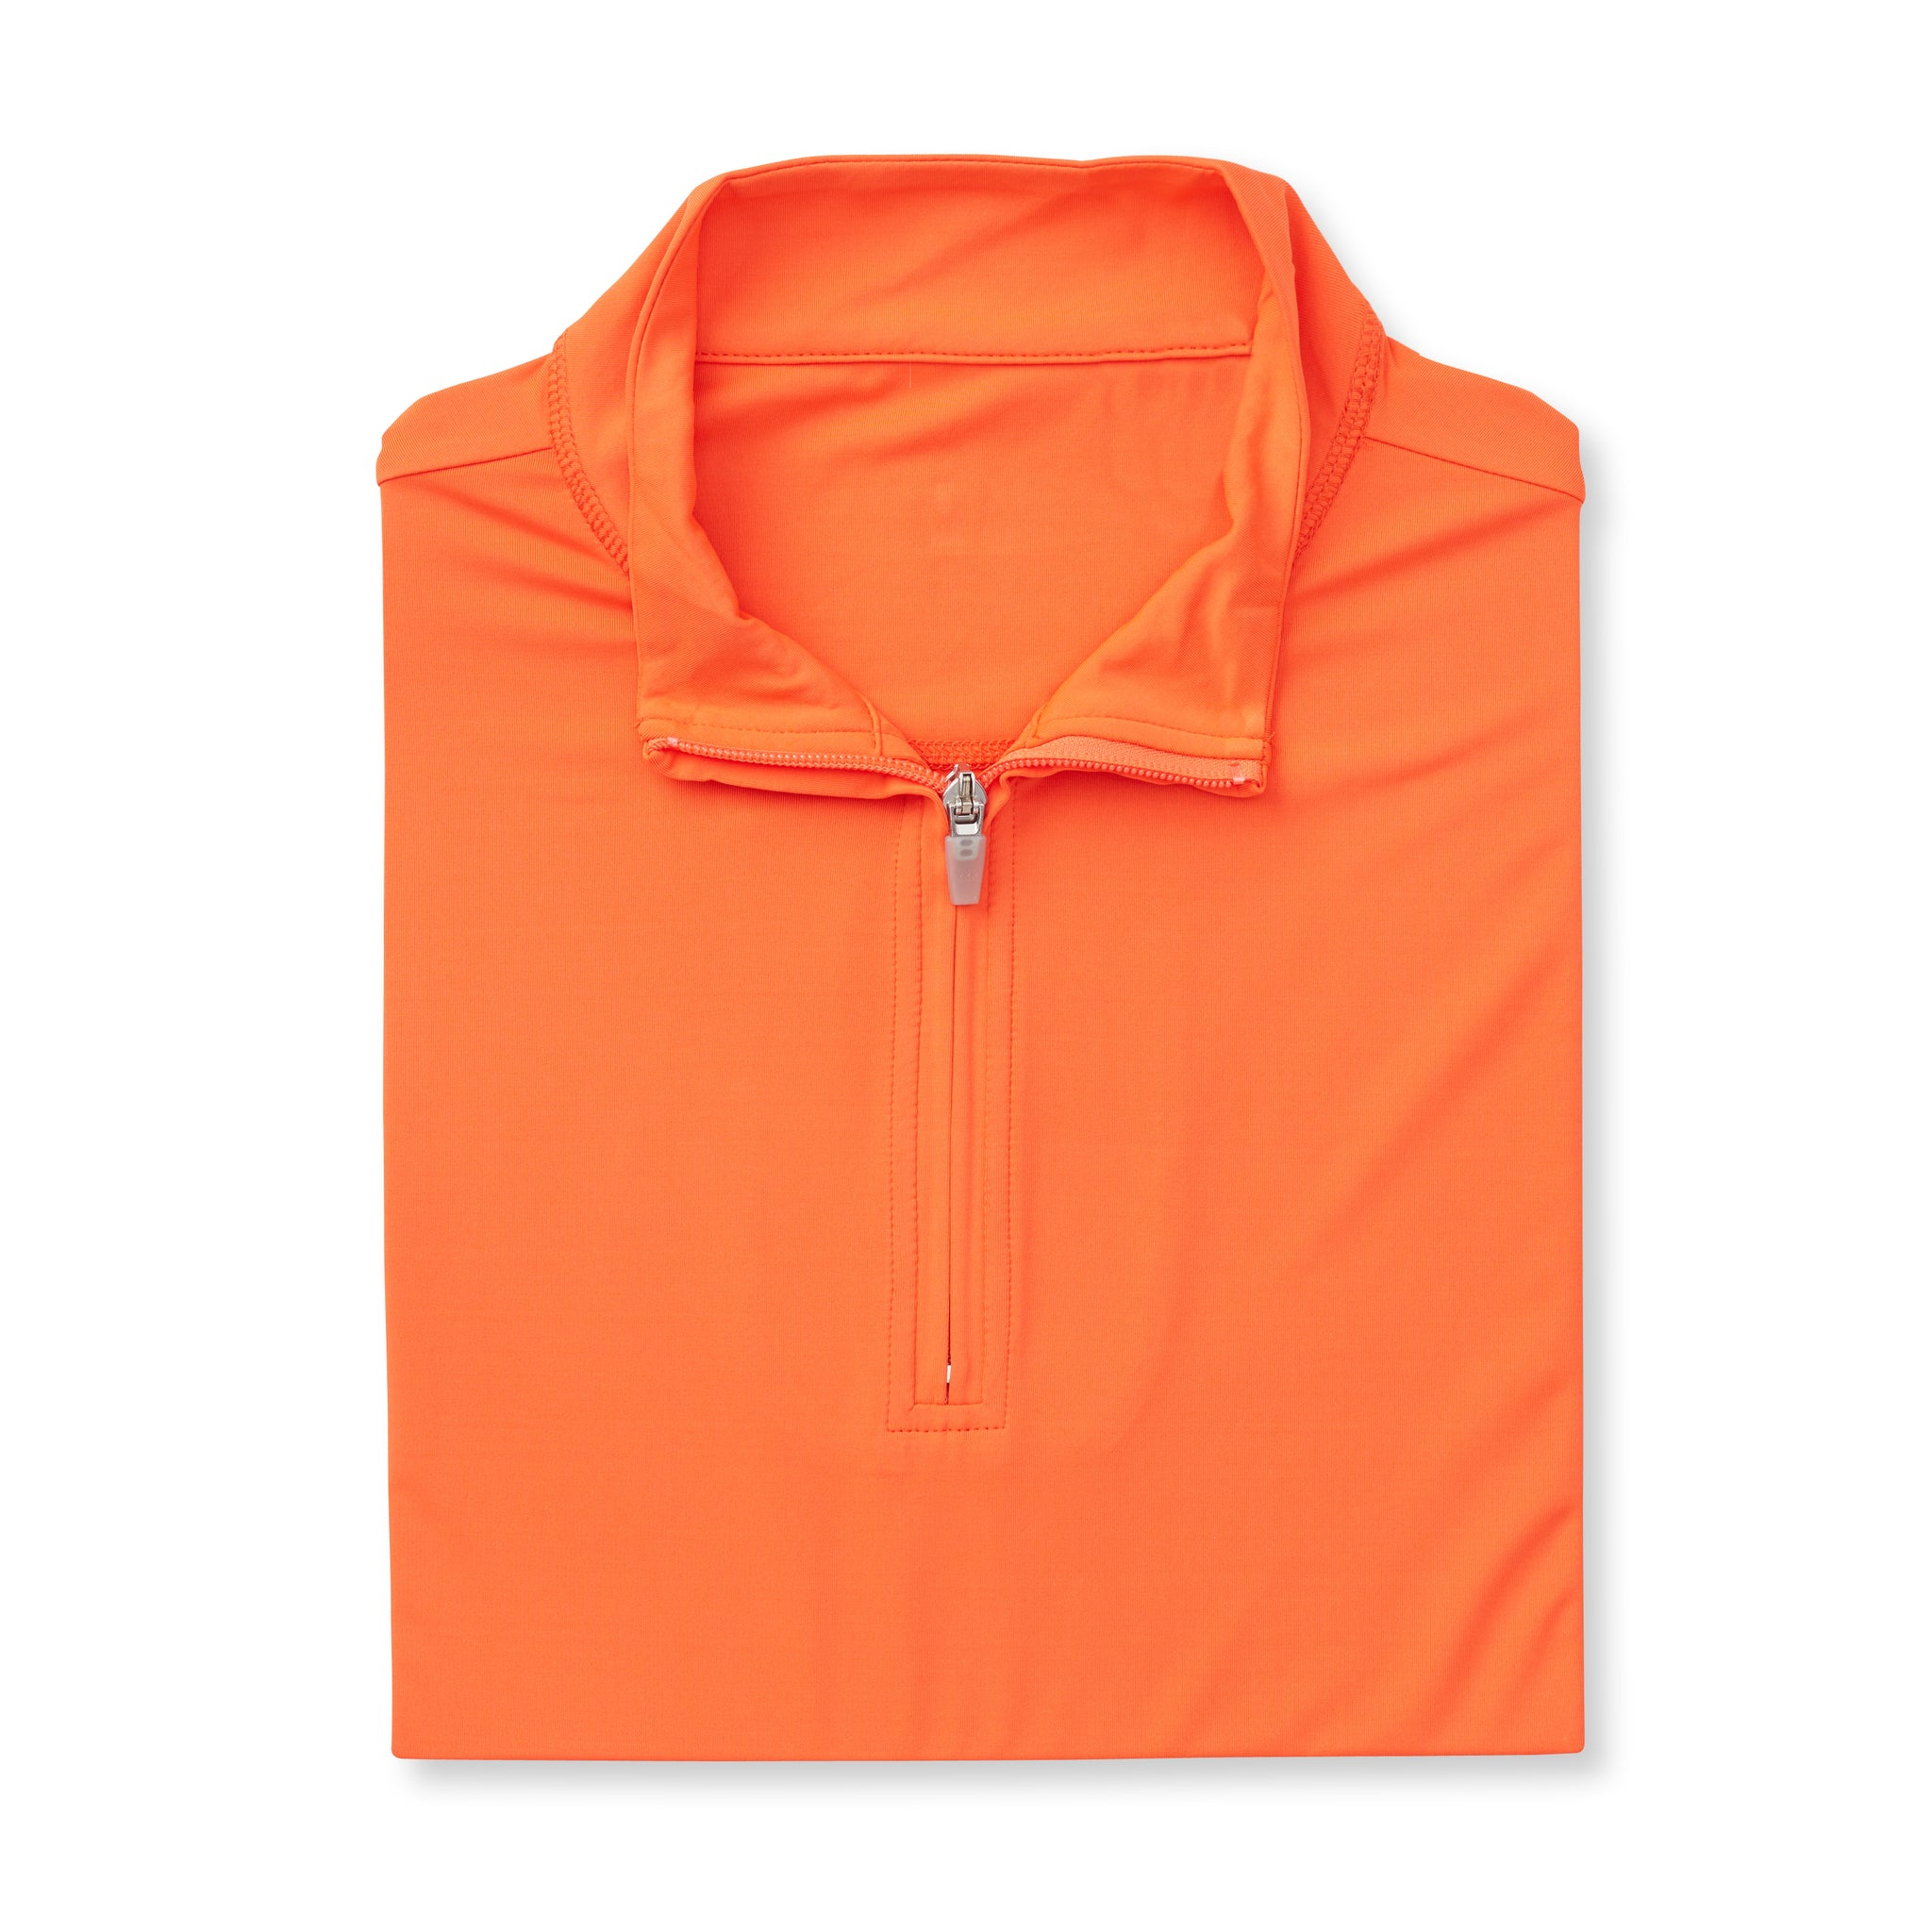 ECOTEC Half Zip Pullover - Vibrant Orange IS66006